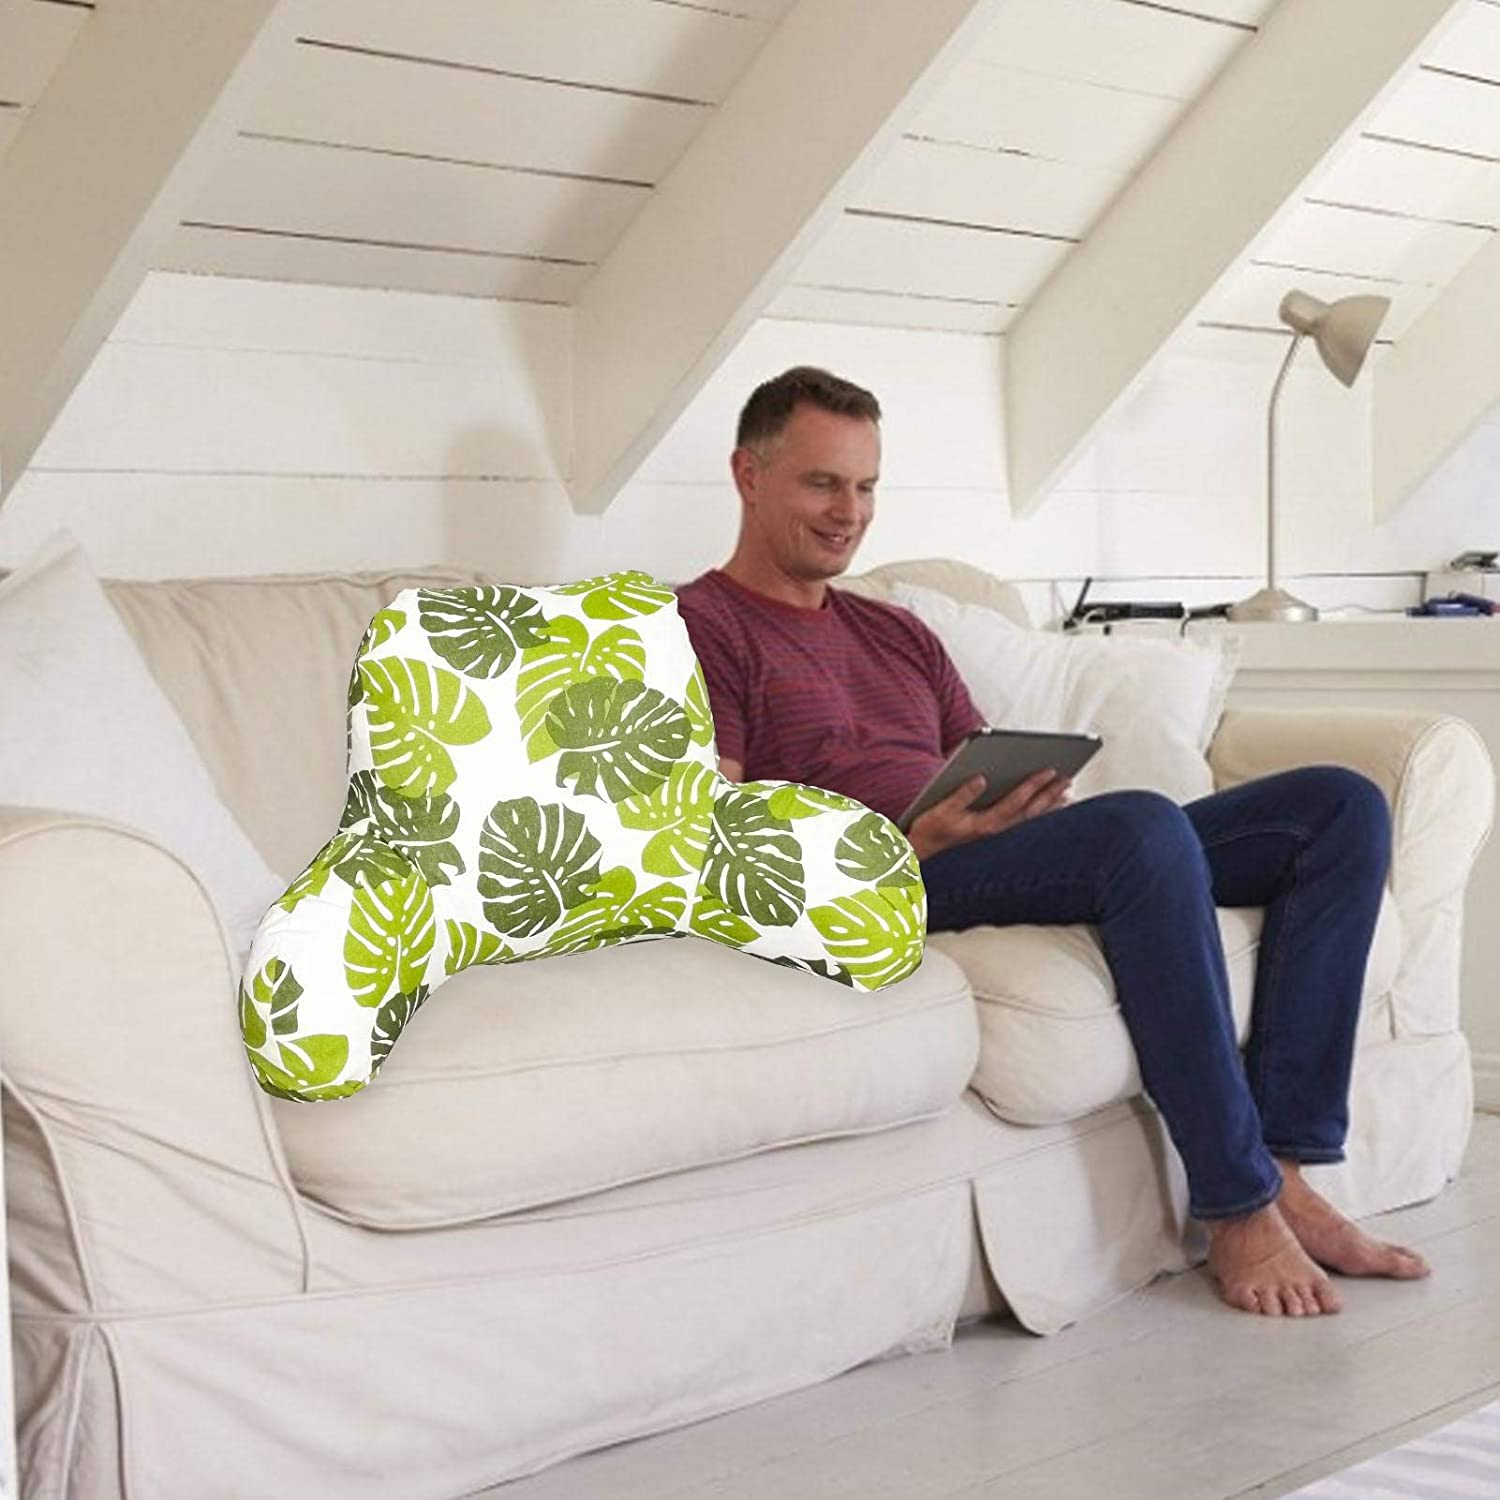 Owlhouse Reading Pillow with Armrest Premium Printed TV Watching Pillow Great As Backrest for Books Or Gaming for Kids /& Teens Petite Back Pillow